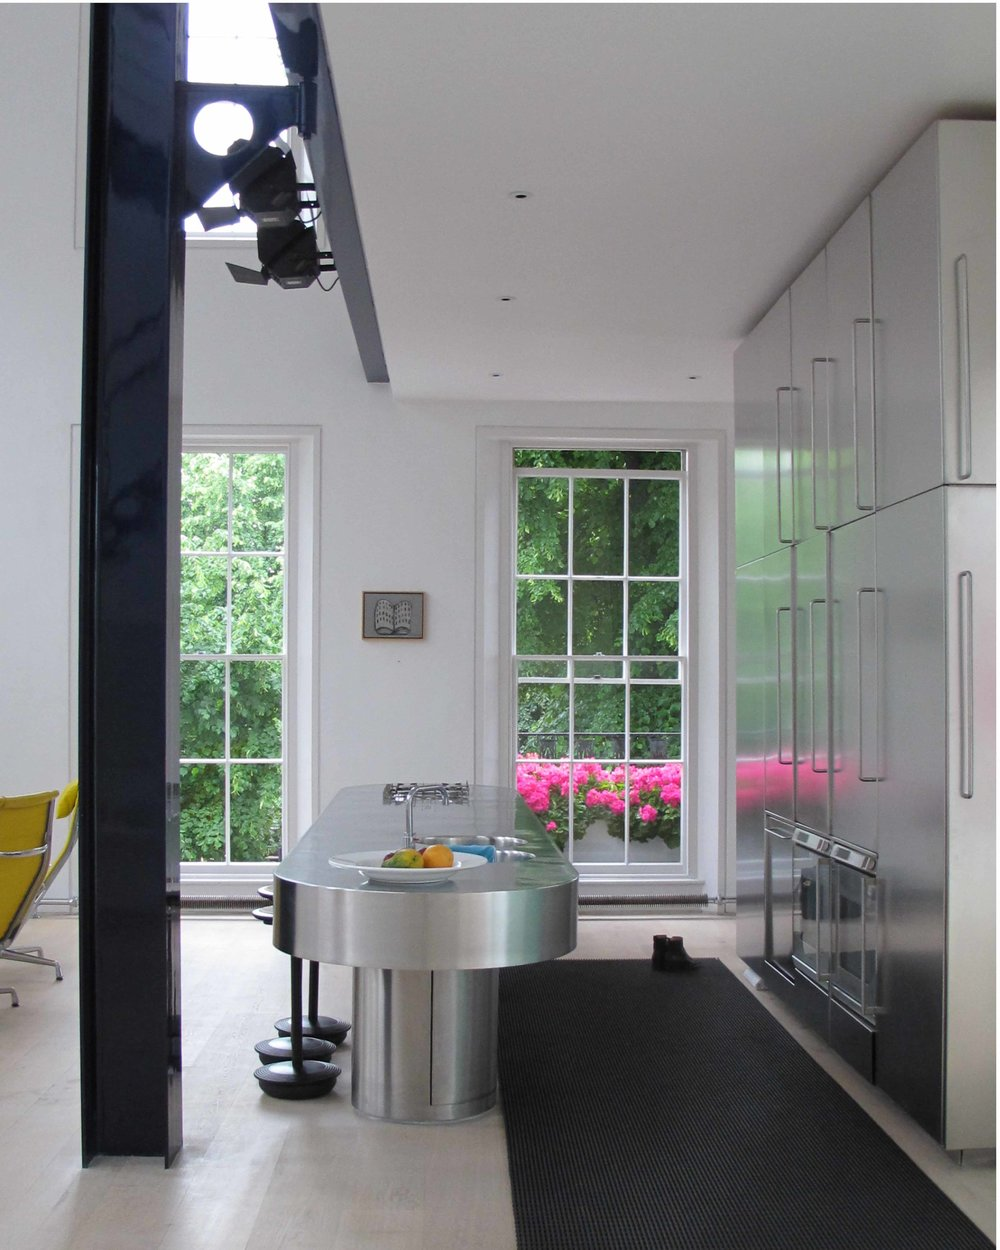 The kitchen. Polished stainless steel, dinesen floor boards. Georgian terrace house refurbishment.